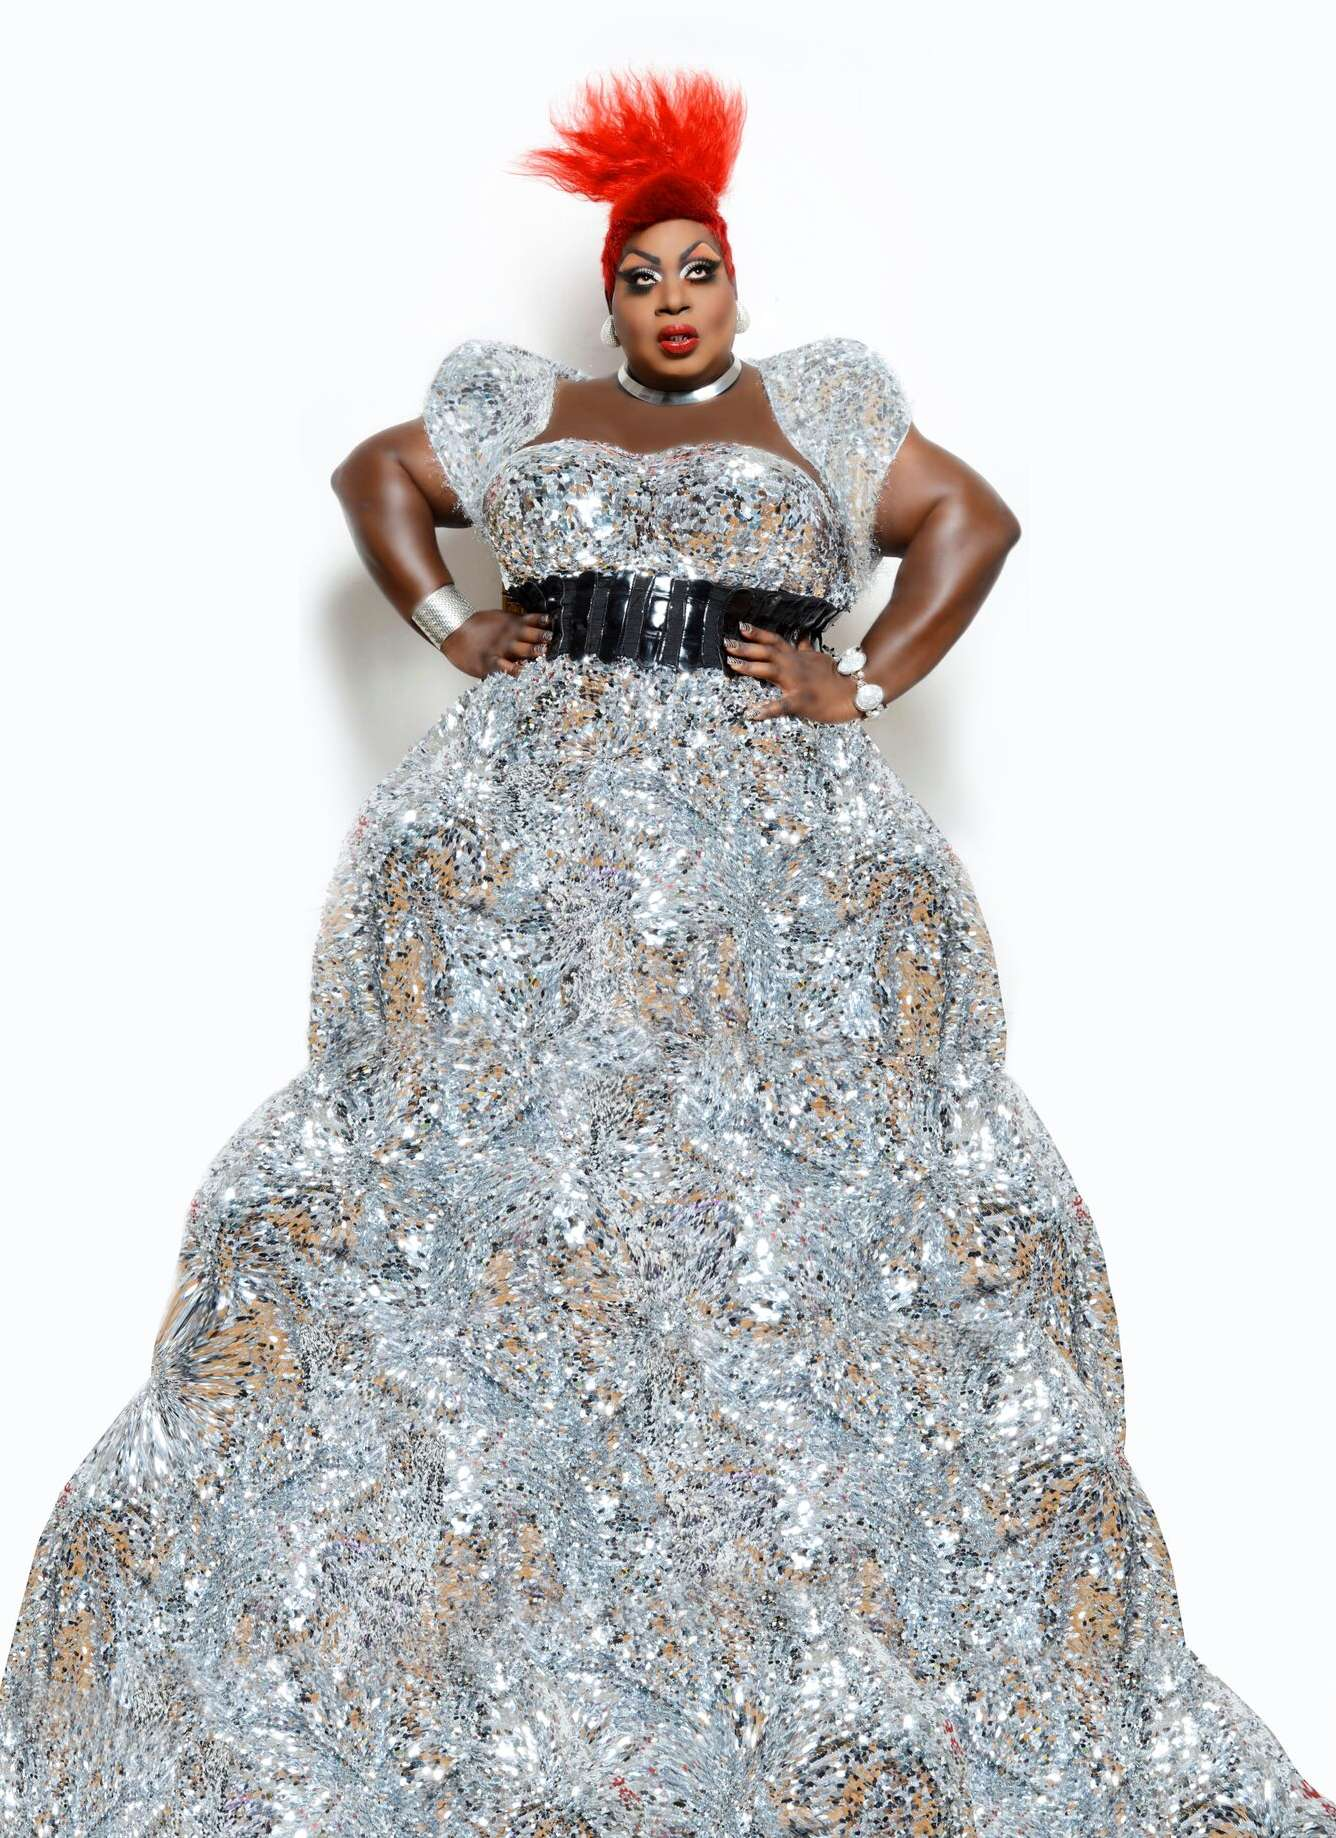 new latrice royale track full